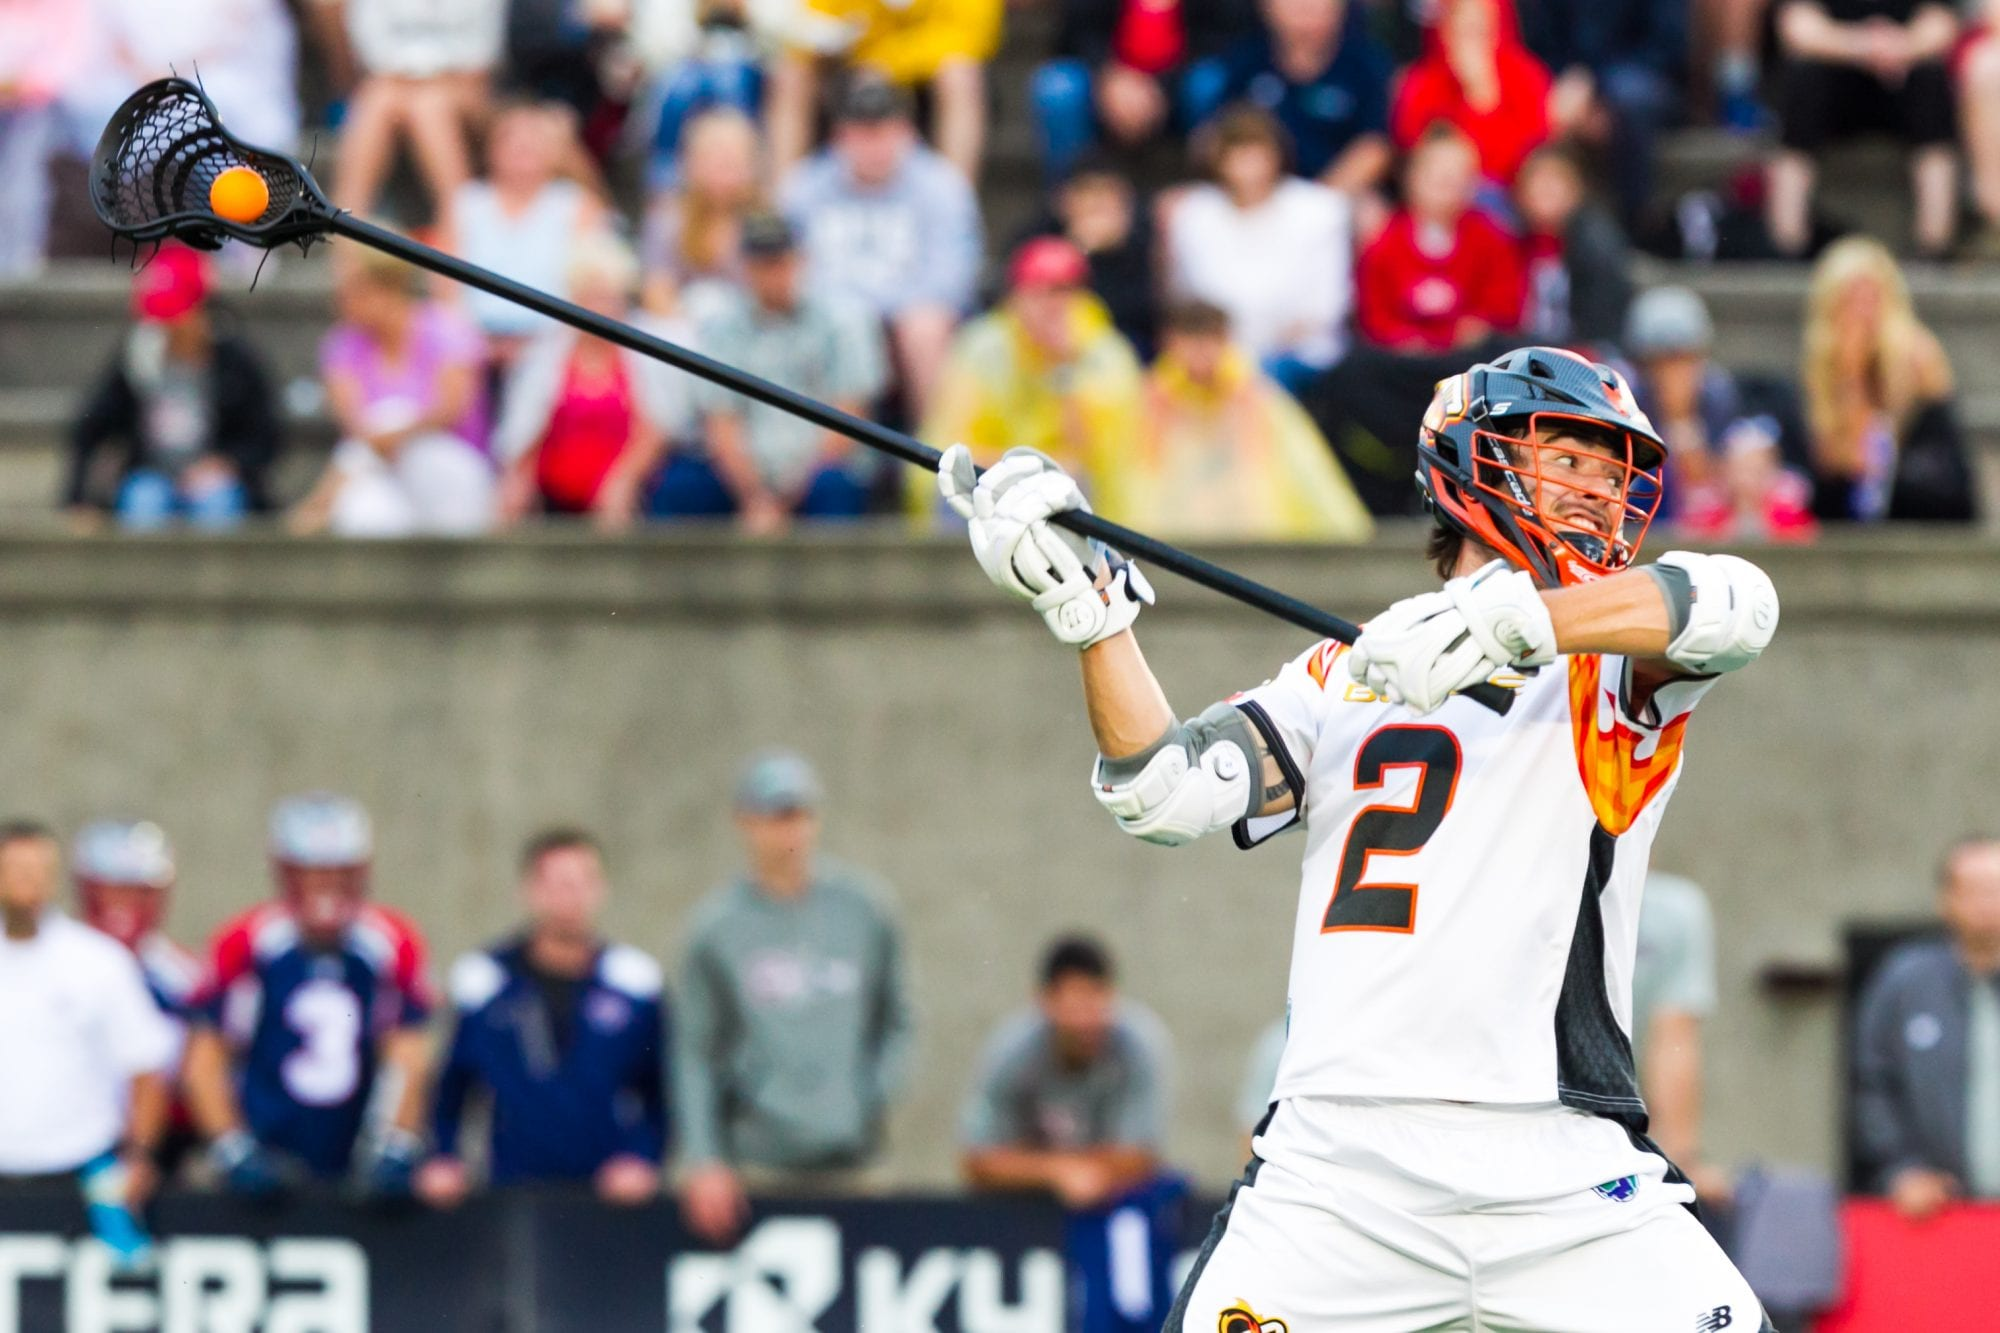 Scott Ratliff Redefines the Pro Lacrosse Player - Lacrosse